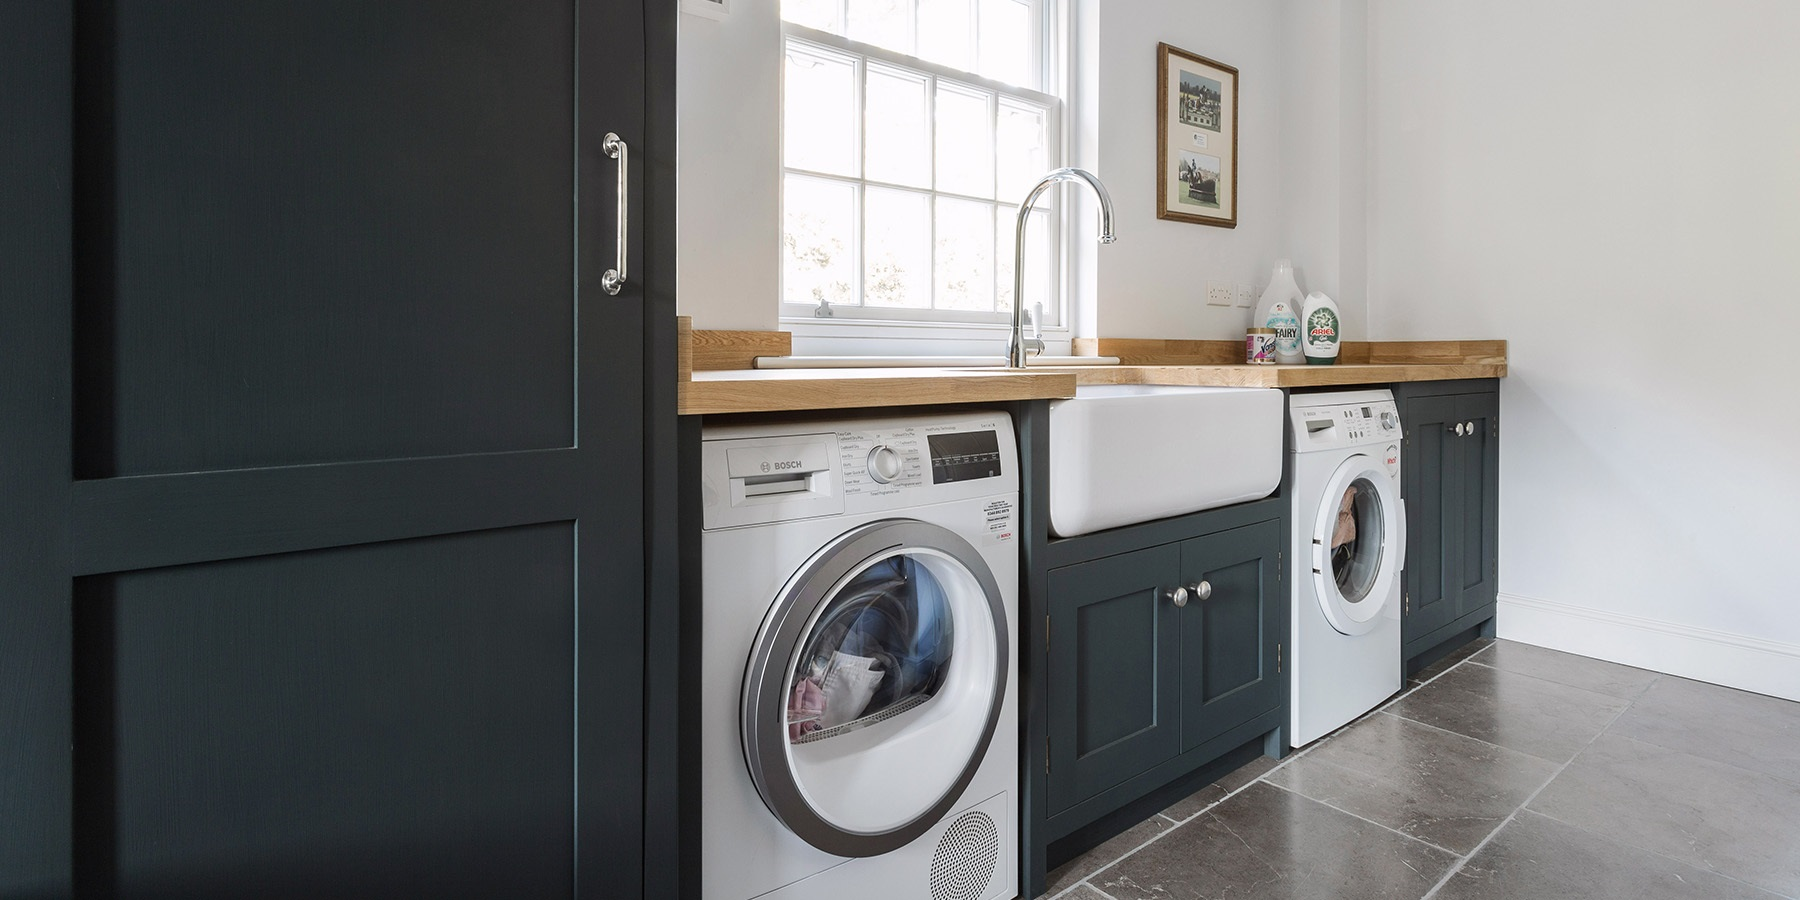 Handmade Utility Room Storage  - Burlanes handmade utility room furniture with washing machine, tumble dryer and storage solutions.